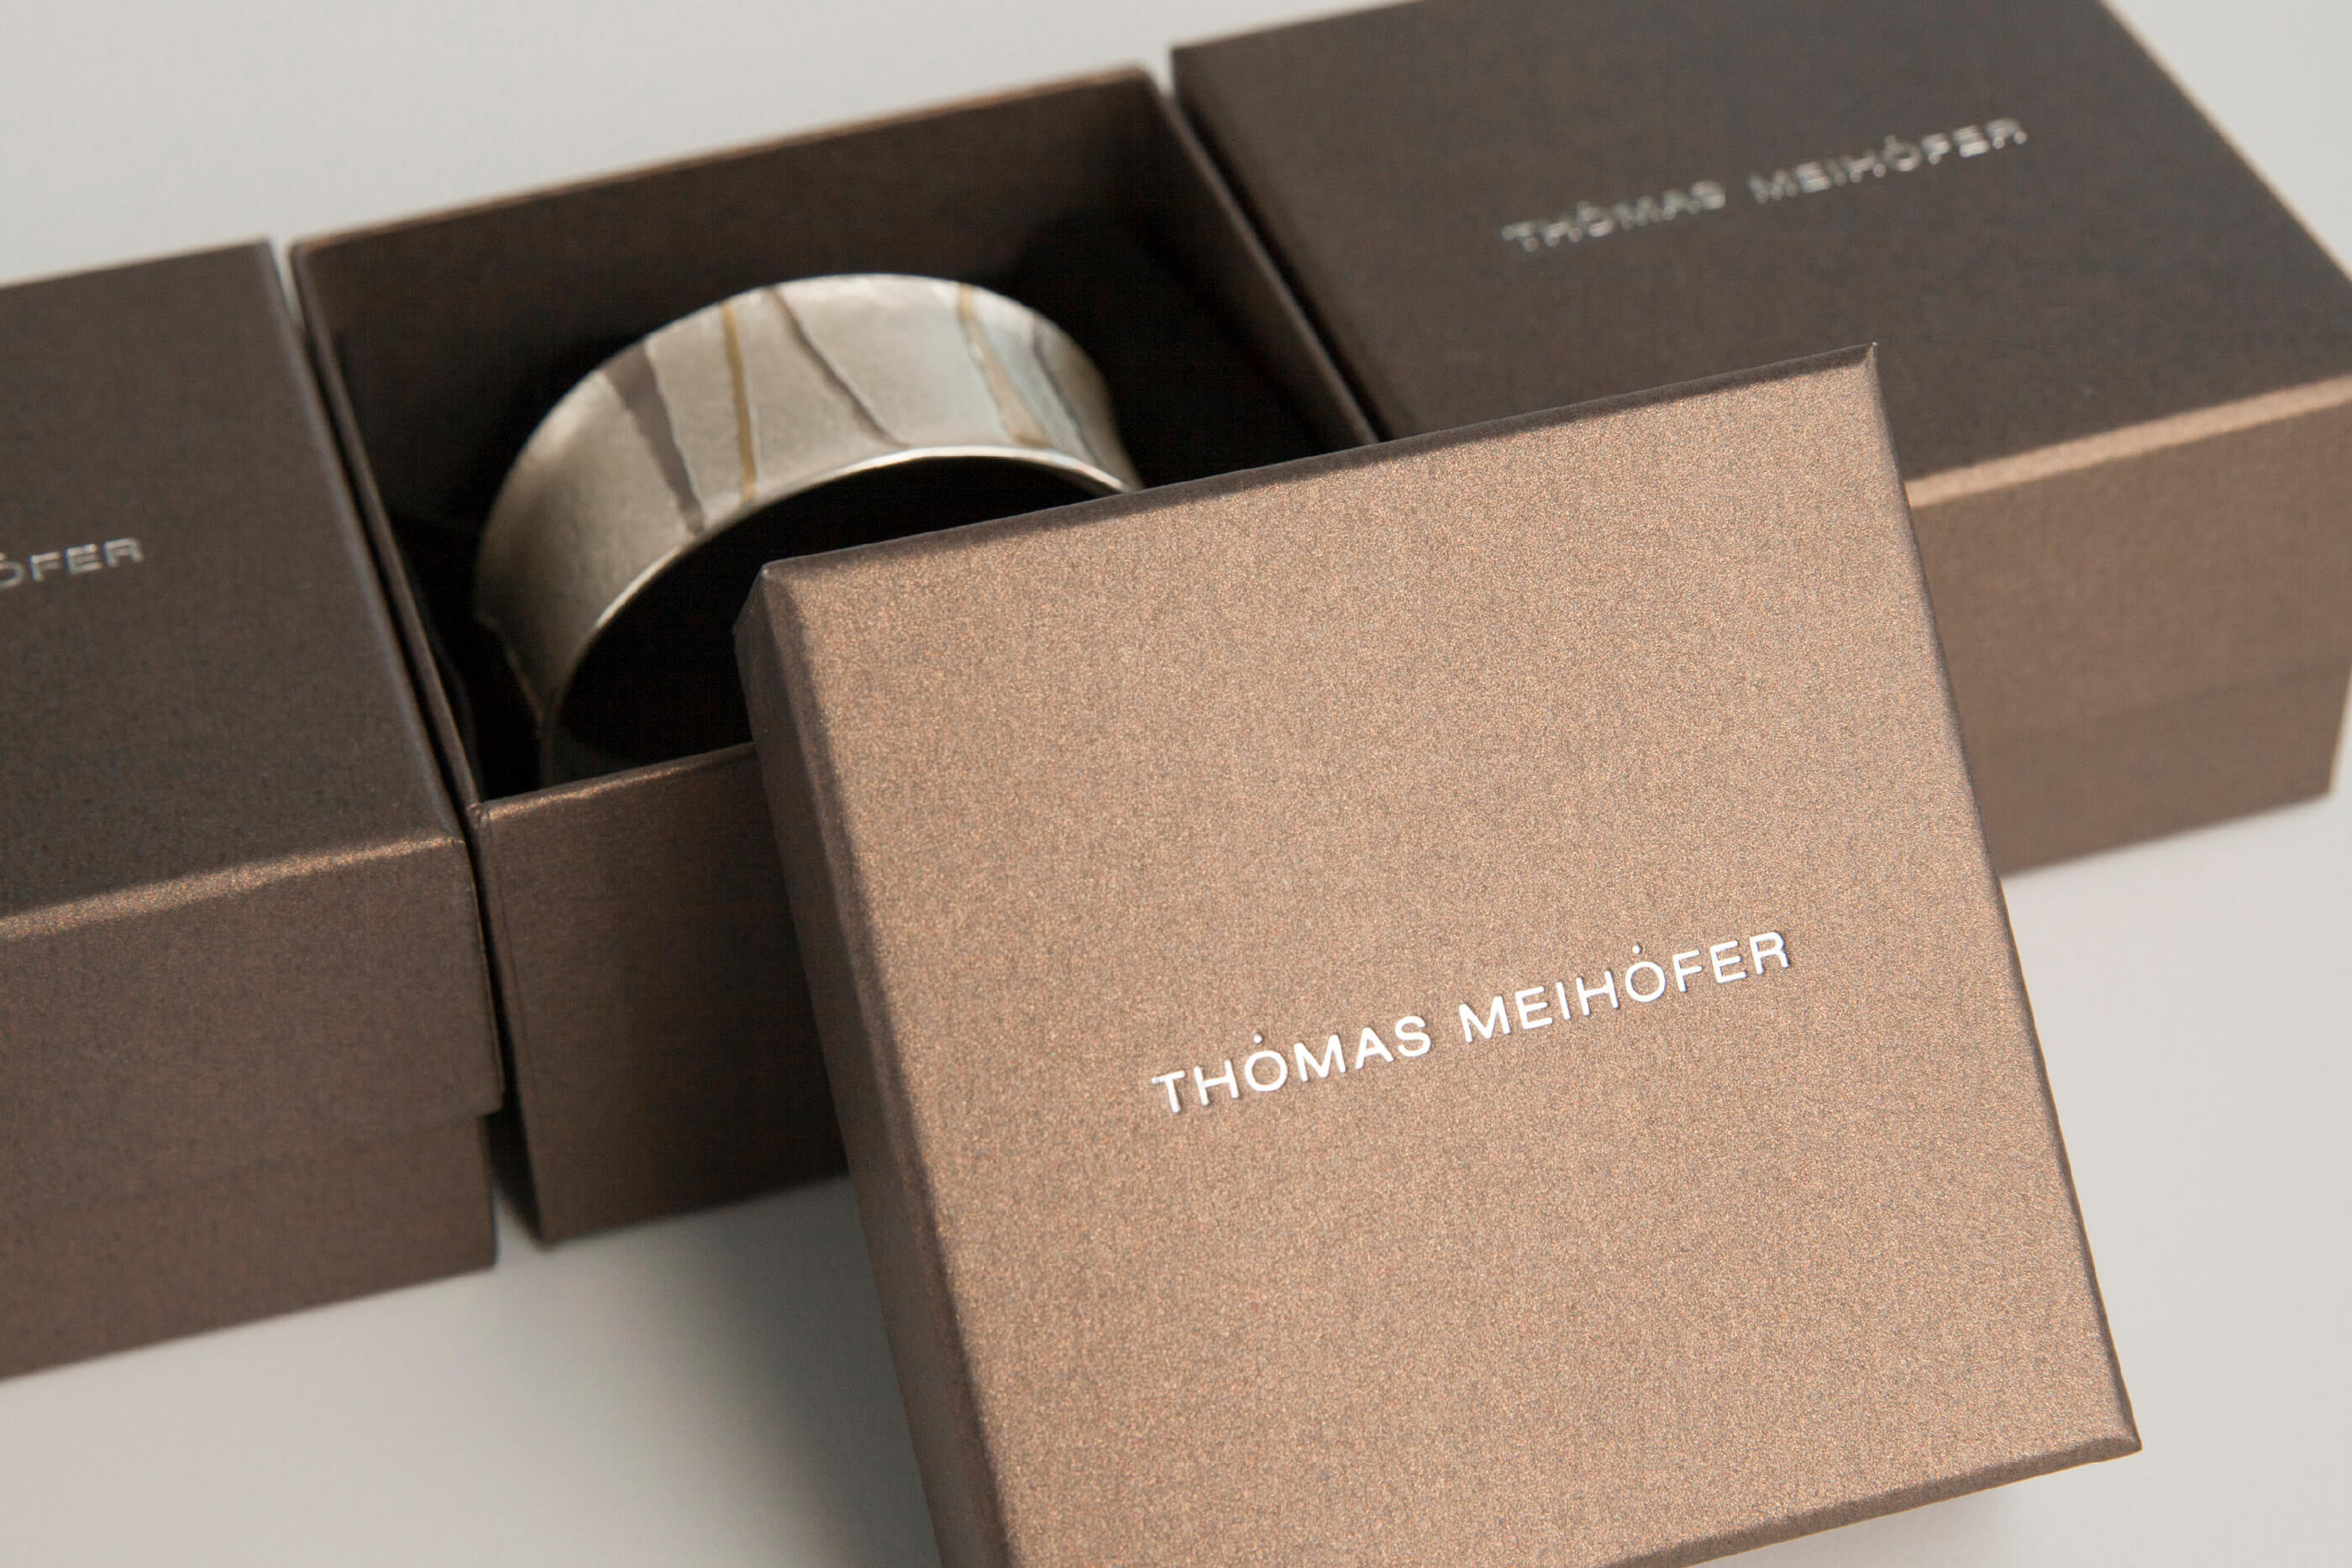 thomas_meihofer_box_2